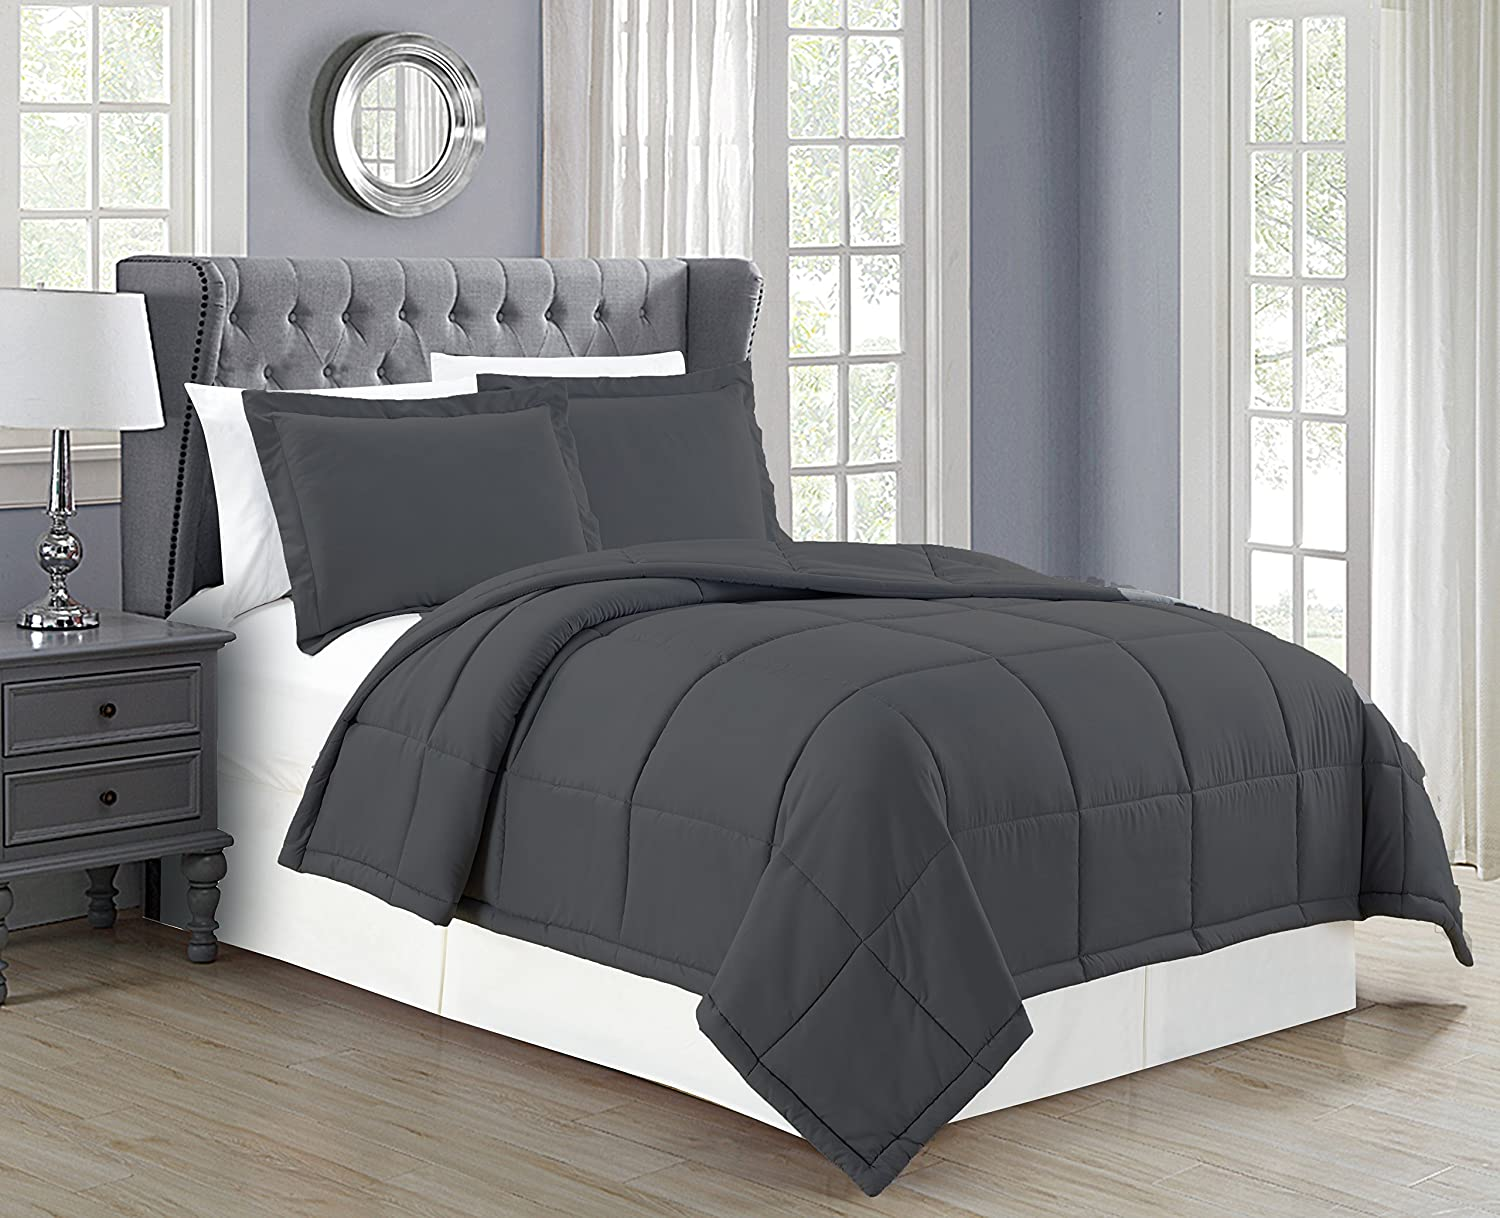 Mk Collection Down Alternative Comforter Set 3pc King Solid Charcoal/Dark Grey New